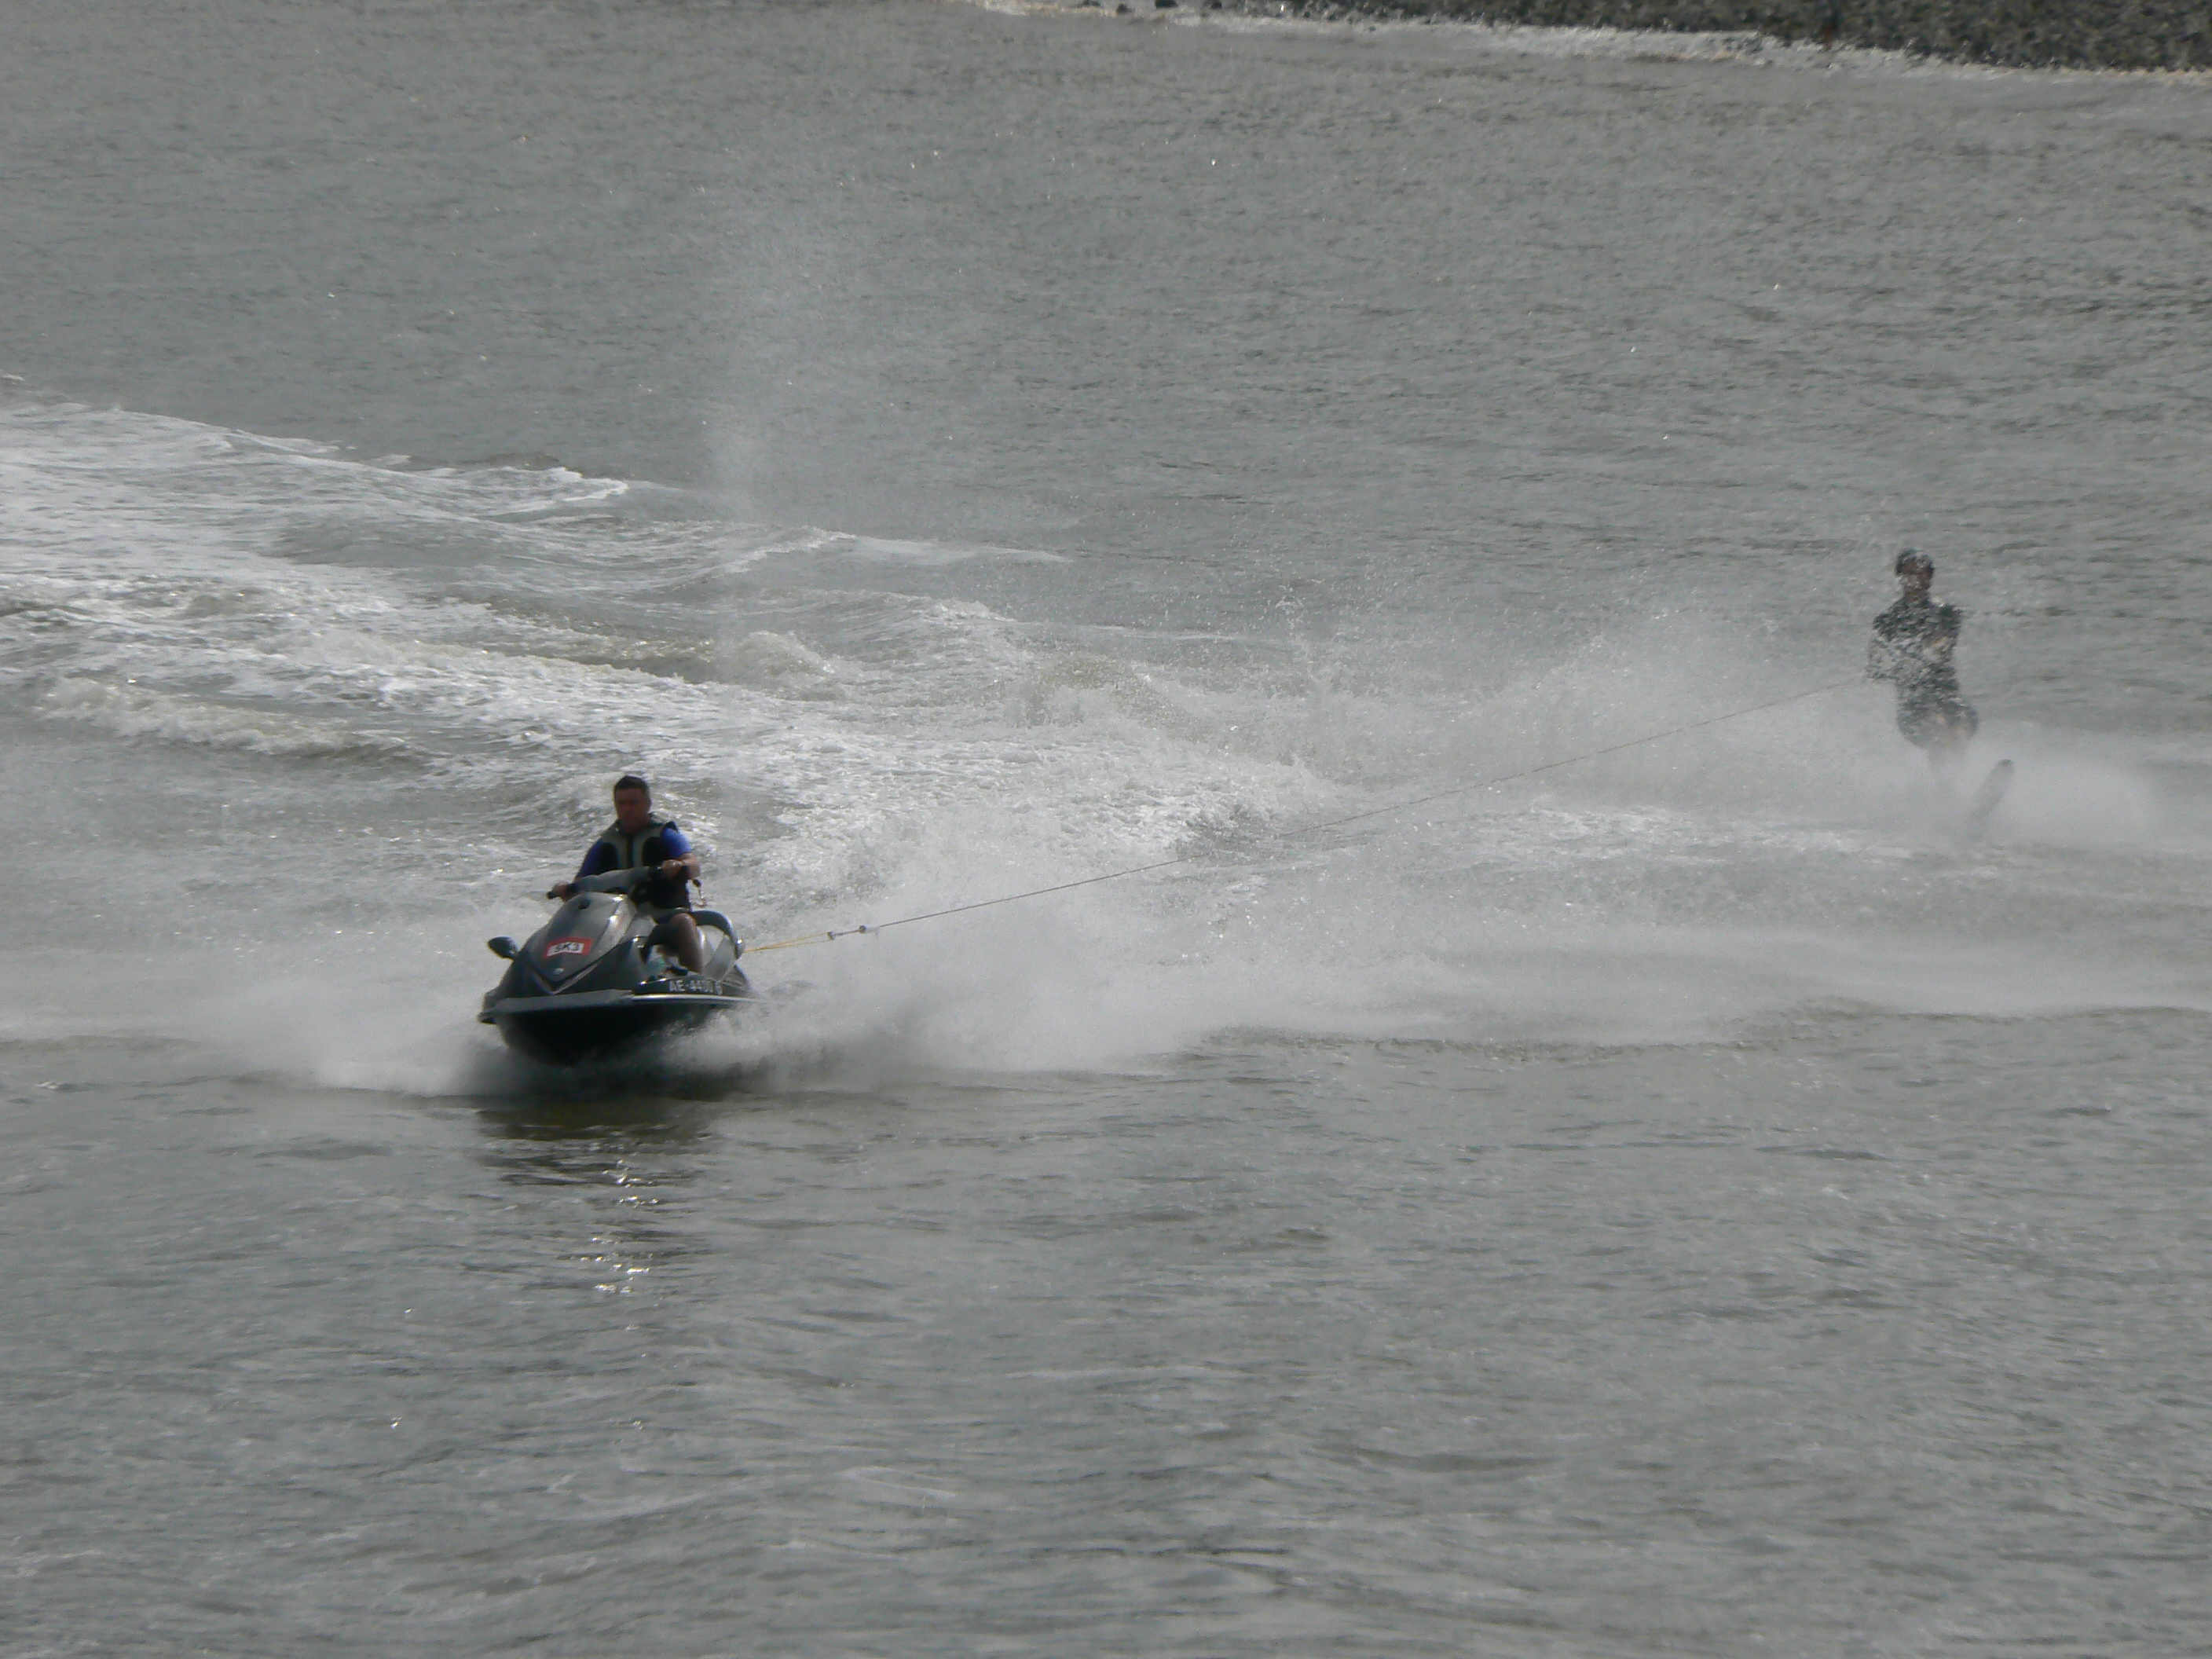 Skiing behind the club jetski off Penarth